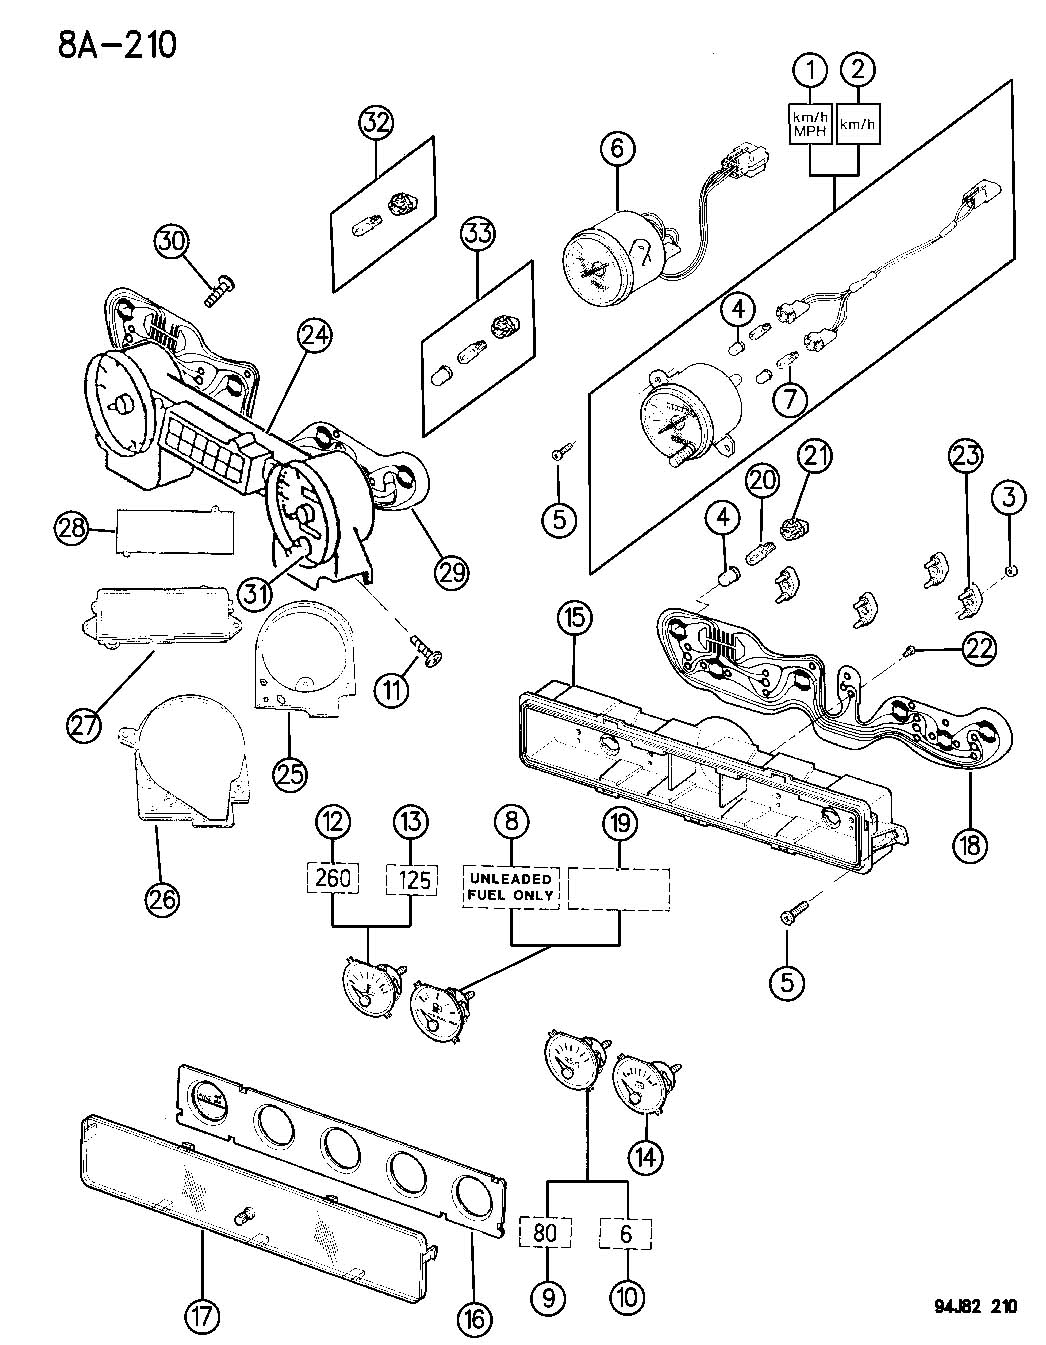 627121 How Rebuild Your 80s Chevy Column together with 1990 Bronco 2 Wiring Diagram For Transfer Case furthermore 1 4 Skip Shift Remedy as well 68092240AA as well 6yn3p Jeep Wrangler Se Automatic Shift 1997 Jeep Wrangler. on jeep wrangler gear shift